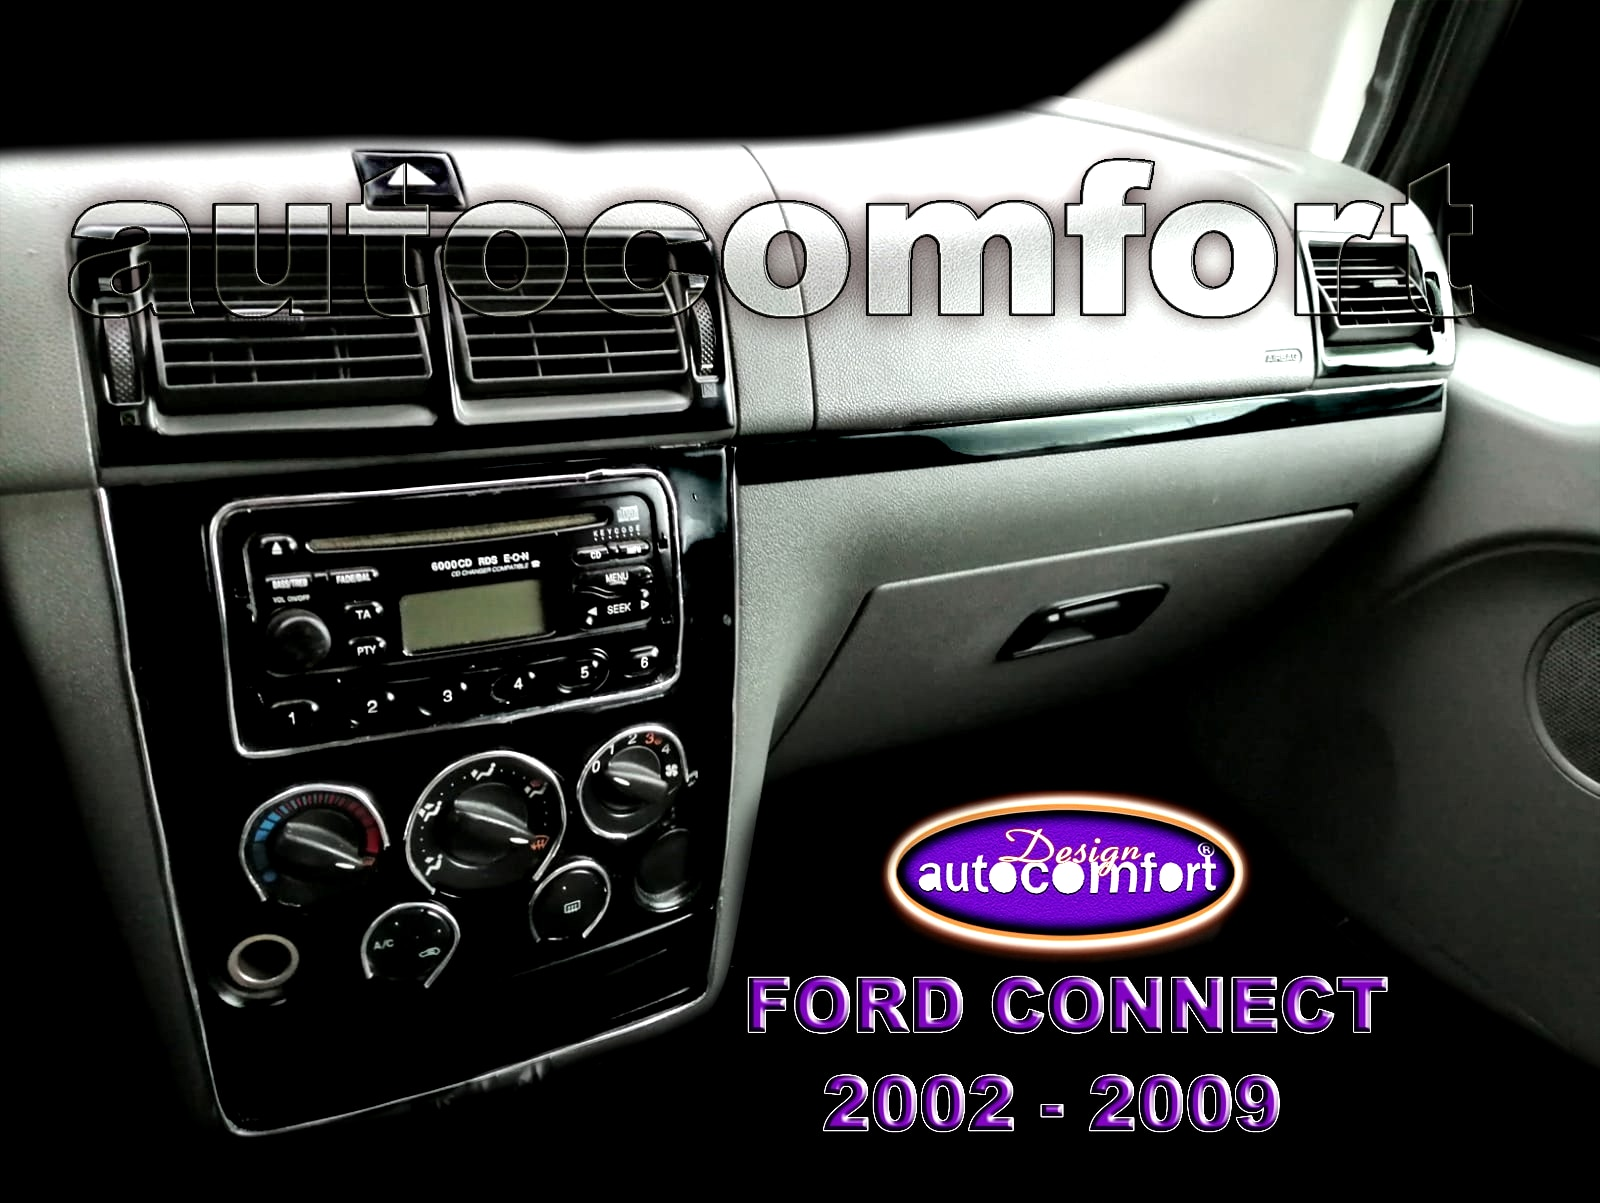 For Ford Connect 2002-2009 Dash Kit, Cockpit Decor, 5D Interior Trim Stickers, Torpedo Coating, Cover, Vehicele, Car Accessory enlarge